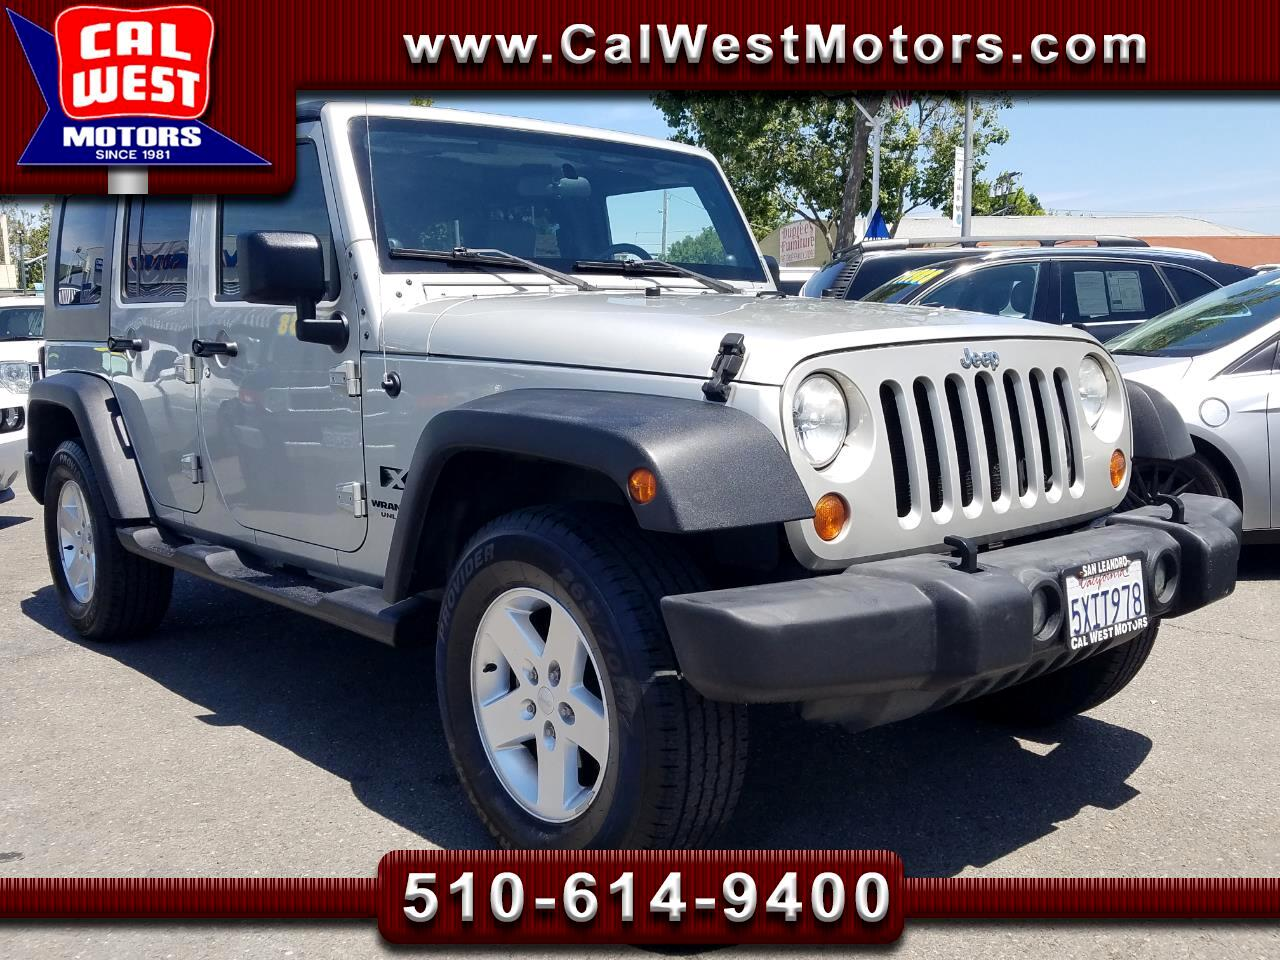 2007 Jeep Wrangler 4WD Unlimited HardTop 6-Speed LoMiles GreatMtnce